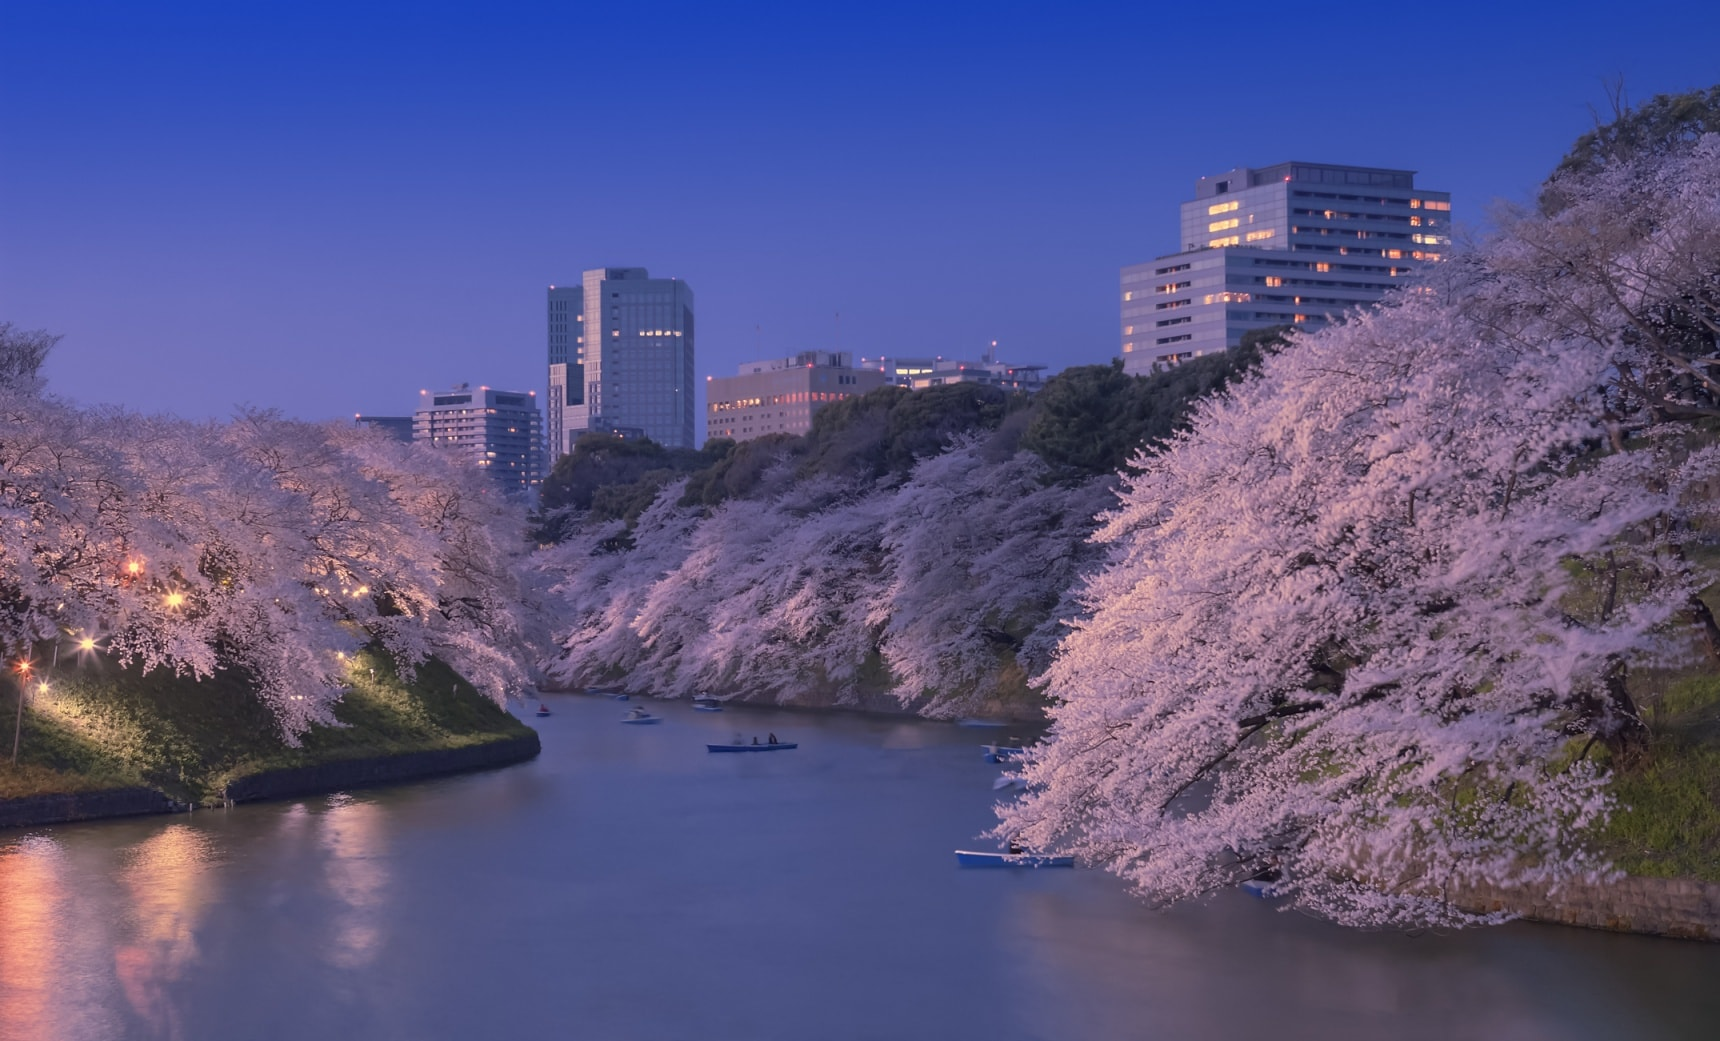 10 Top Nighttime Cherry Blossom Viewing Spots